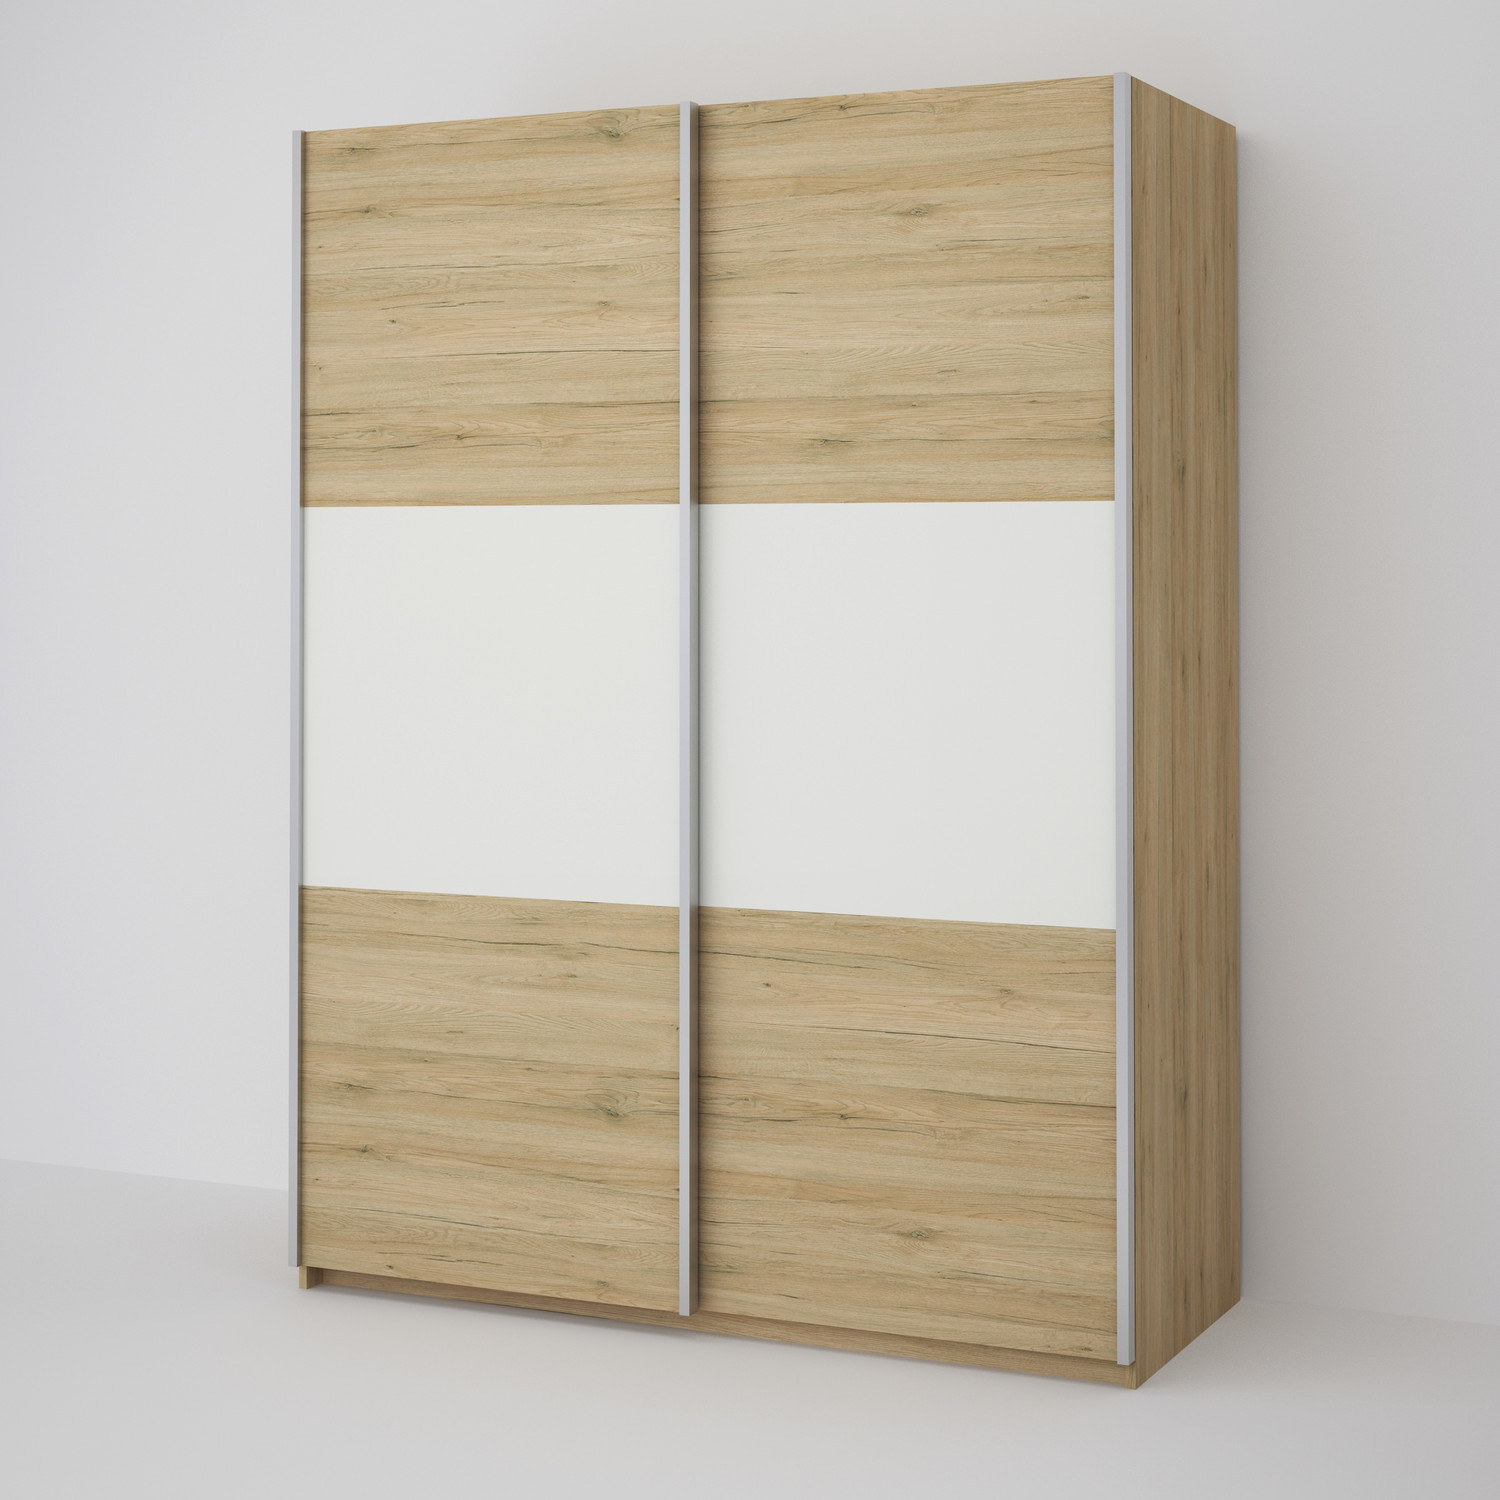 Amazing photo of Appealing White Wardrobe Closet Images Design Inspiration Golime.co with #816E4A color and 1500x1500 pixels